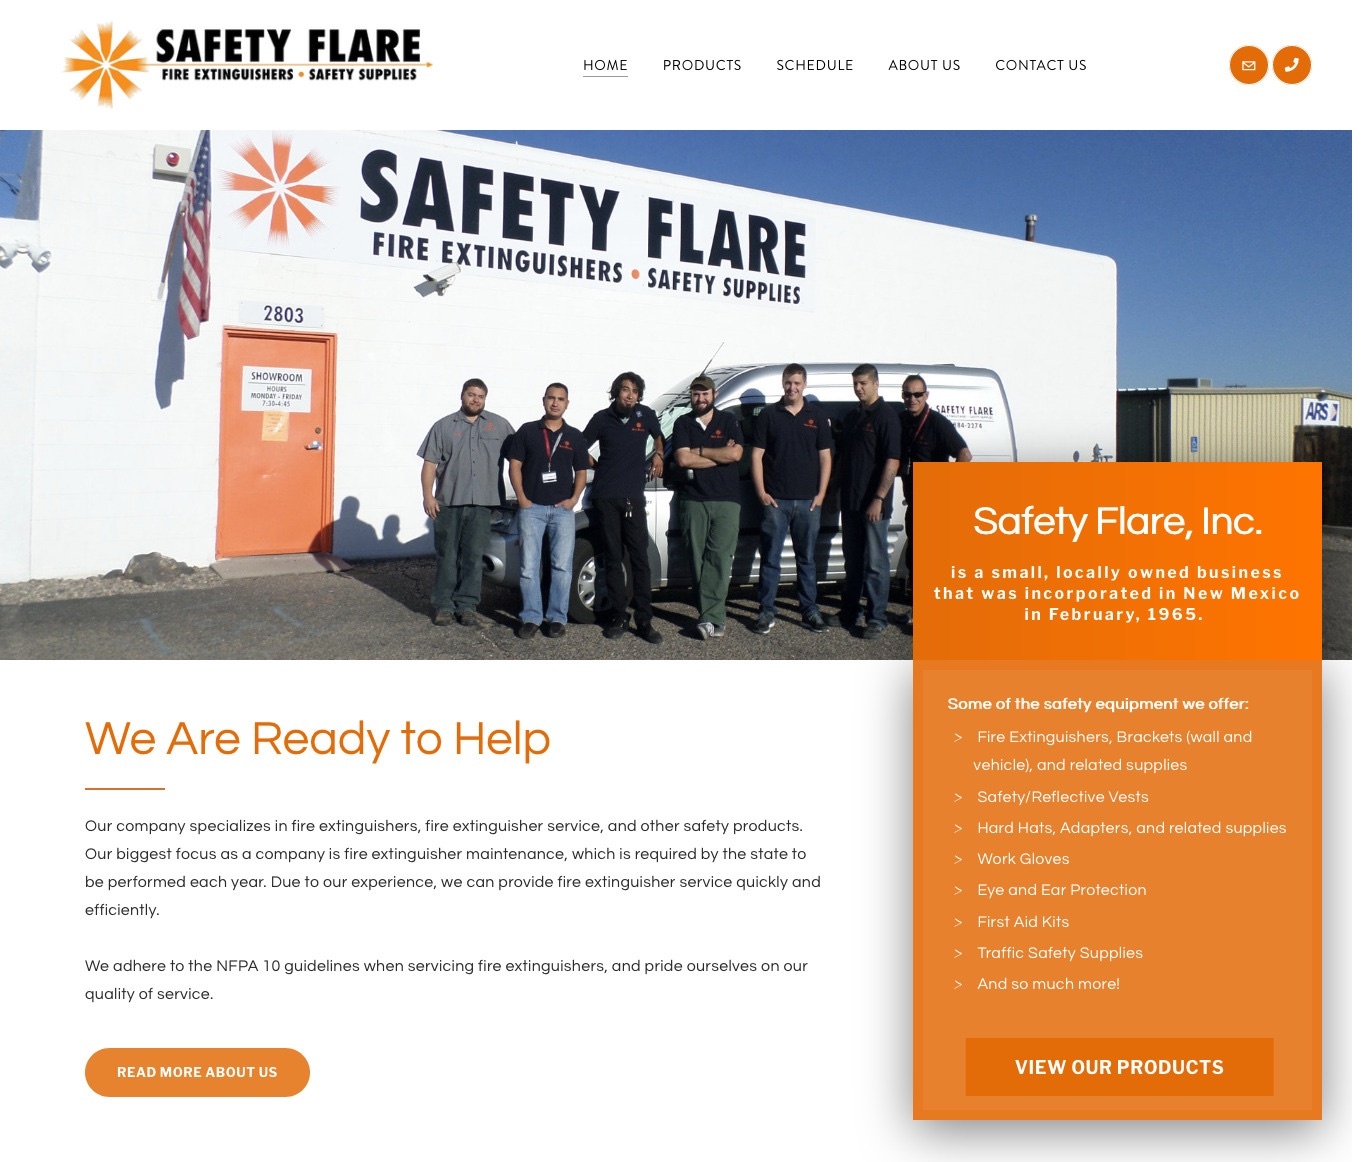 Safety Flare, Inc. Albuquerque, NM